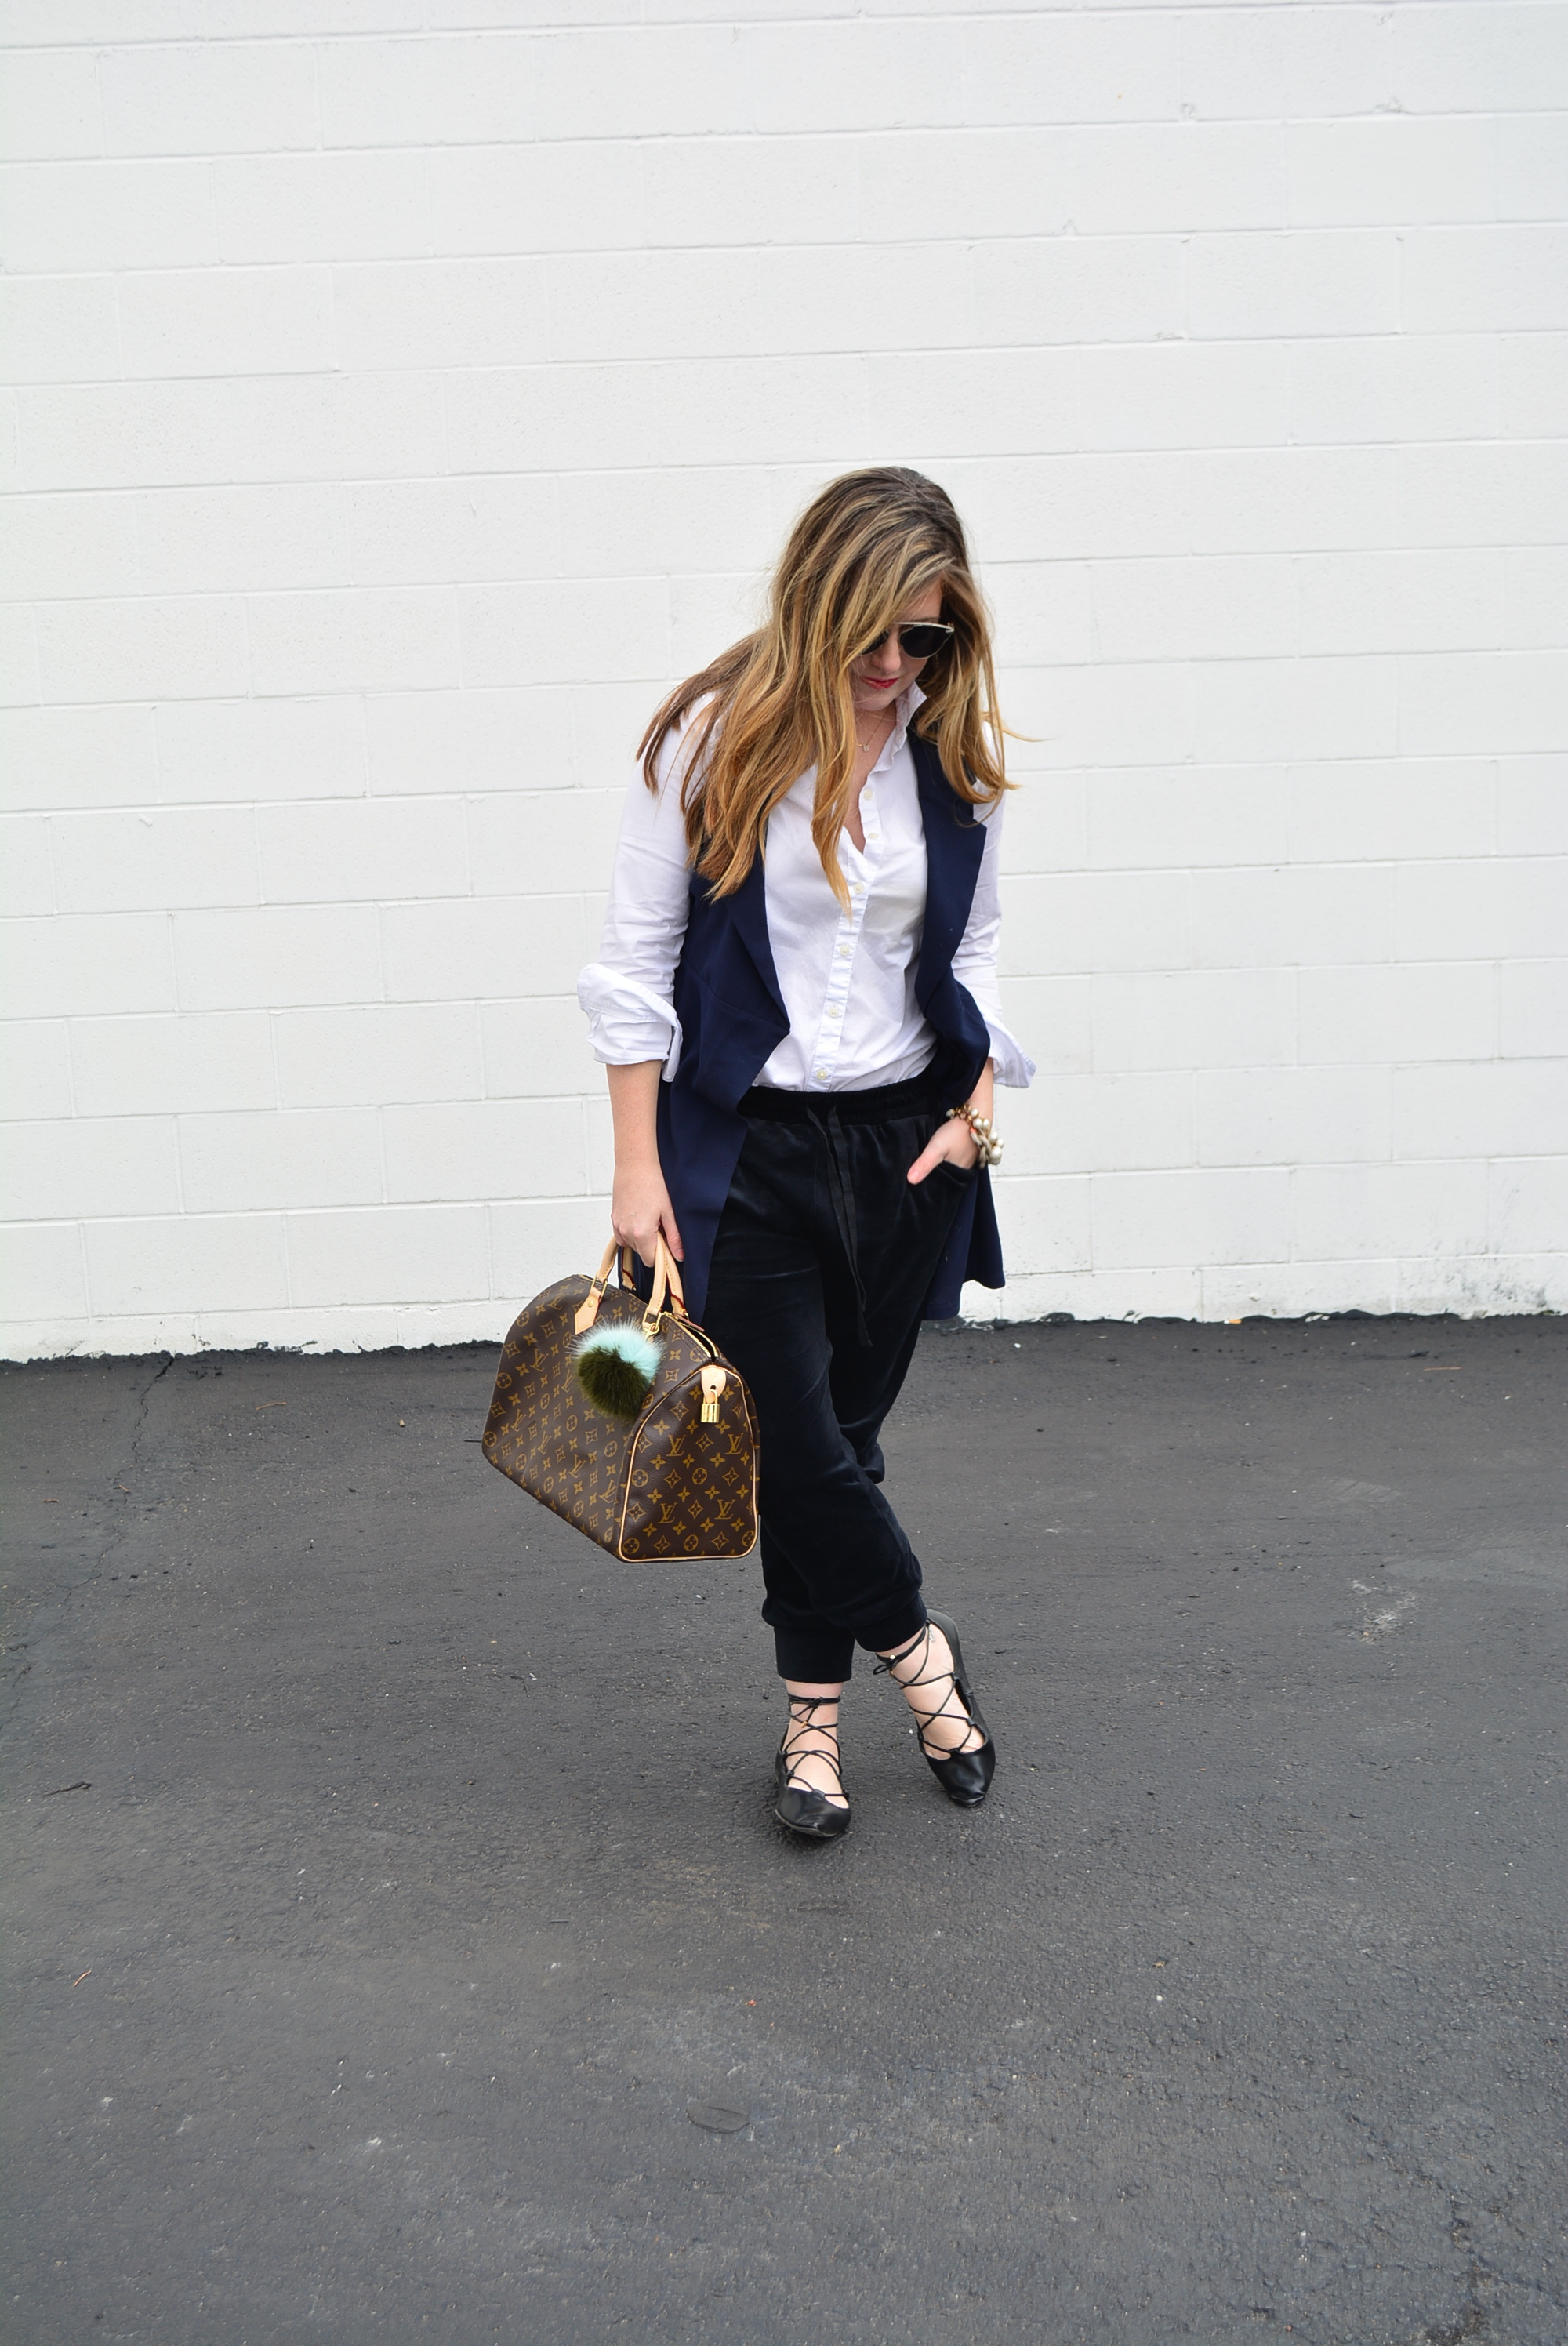 Dressy jogger outfit